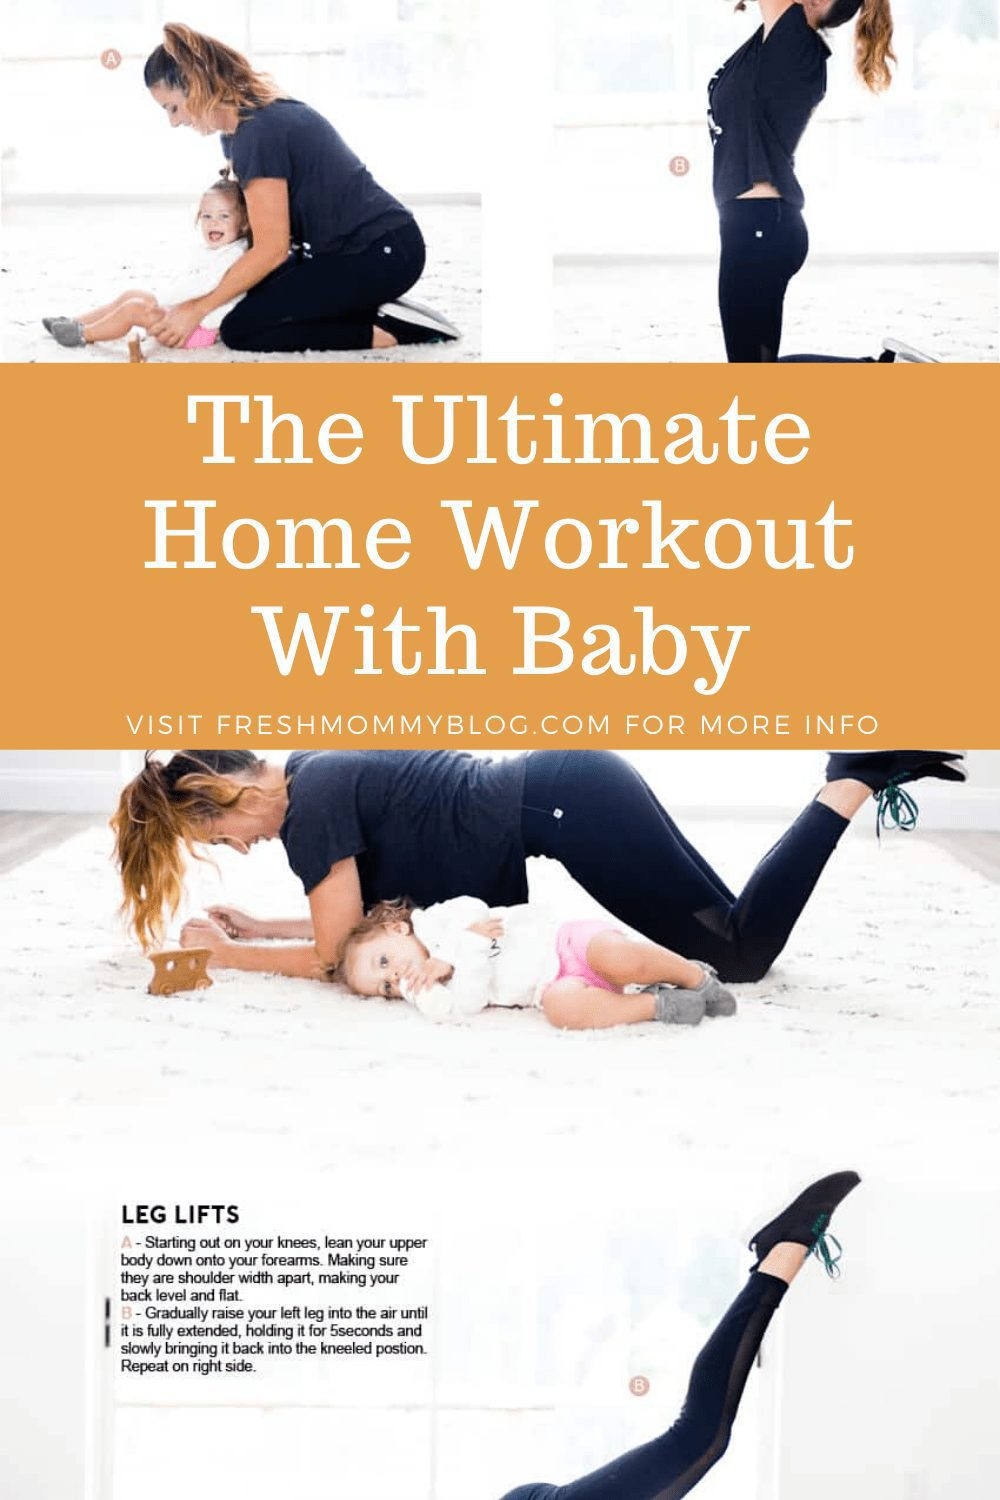 Get your energy back, get stress relief and kick start your workouts, even with baby in tow, with this mom and baby workout routine. You can practice self care at home with this exercise routine at home, even with baby, and home bodyweight exercises to reduce stress and increase stamina.